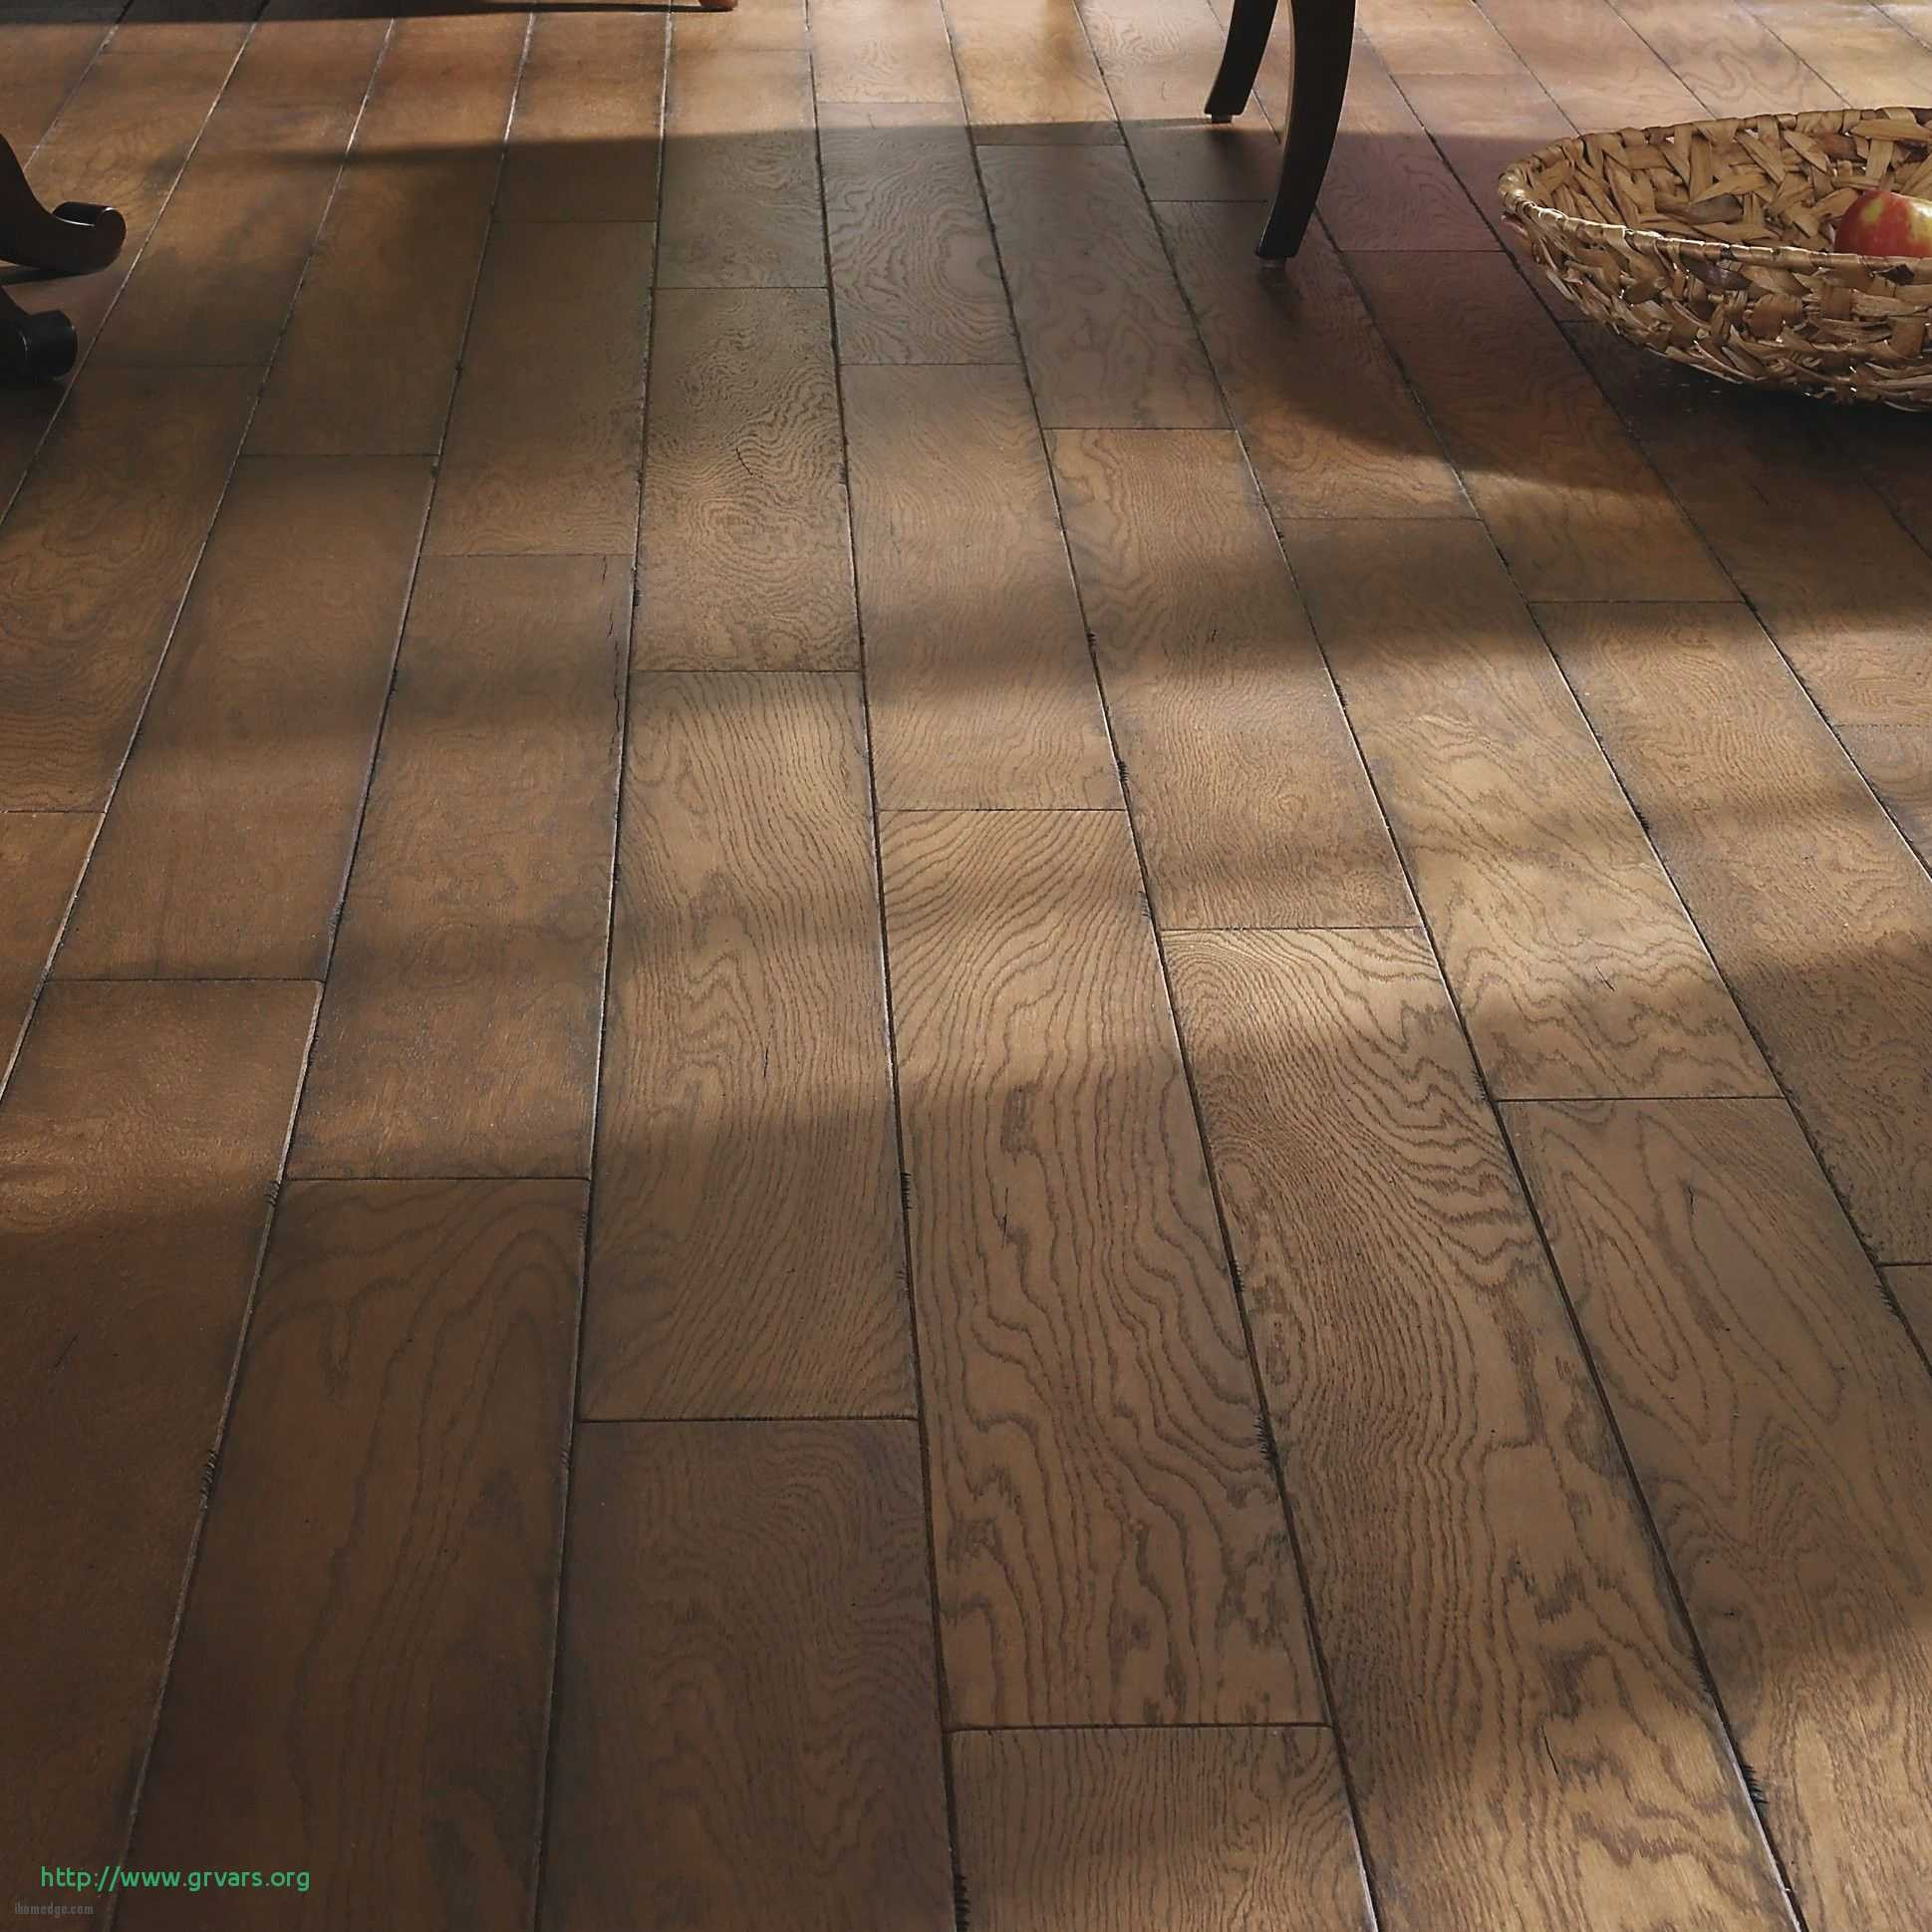 3 4 inch oak hardwood flooring of 16 beau prefinished quarter sawn white oak flooring ideas blog in prefinished quarter sawn white oak flooring impressionnant cool lovely white oak hardwood flooring easoon usa 5